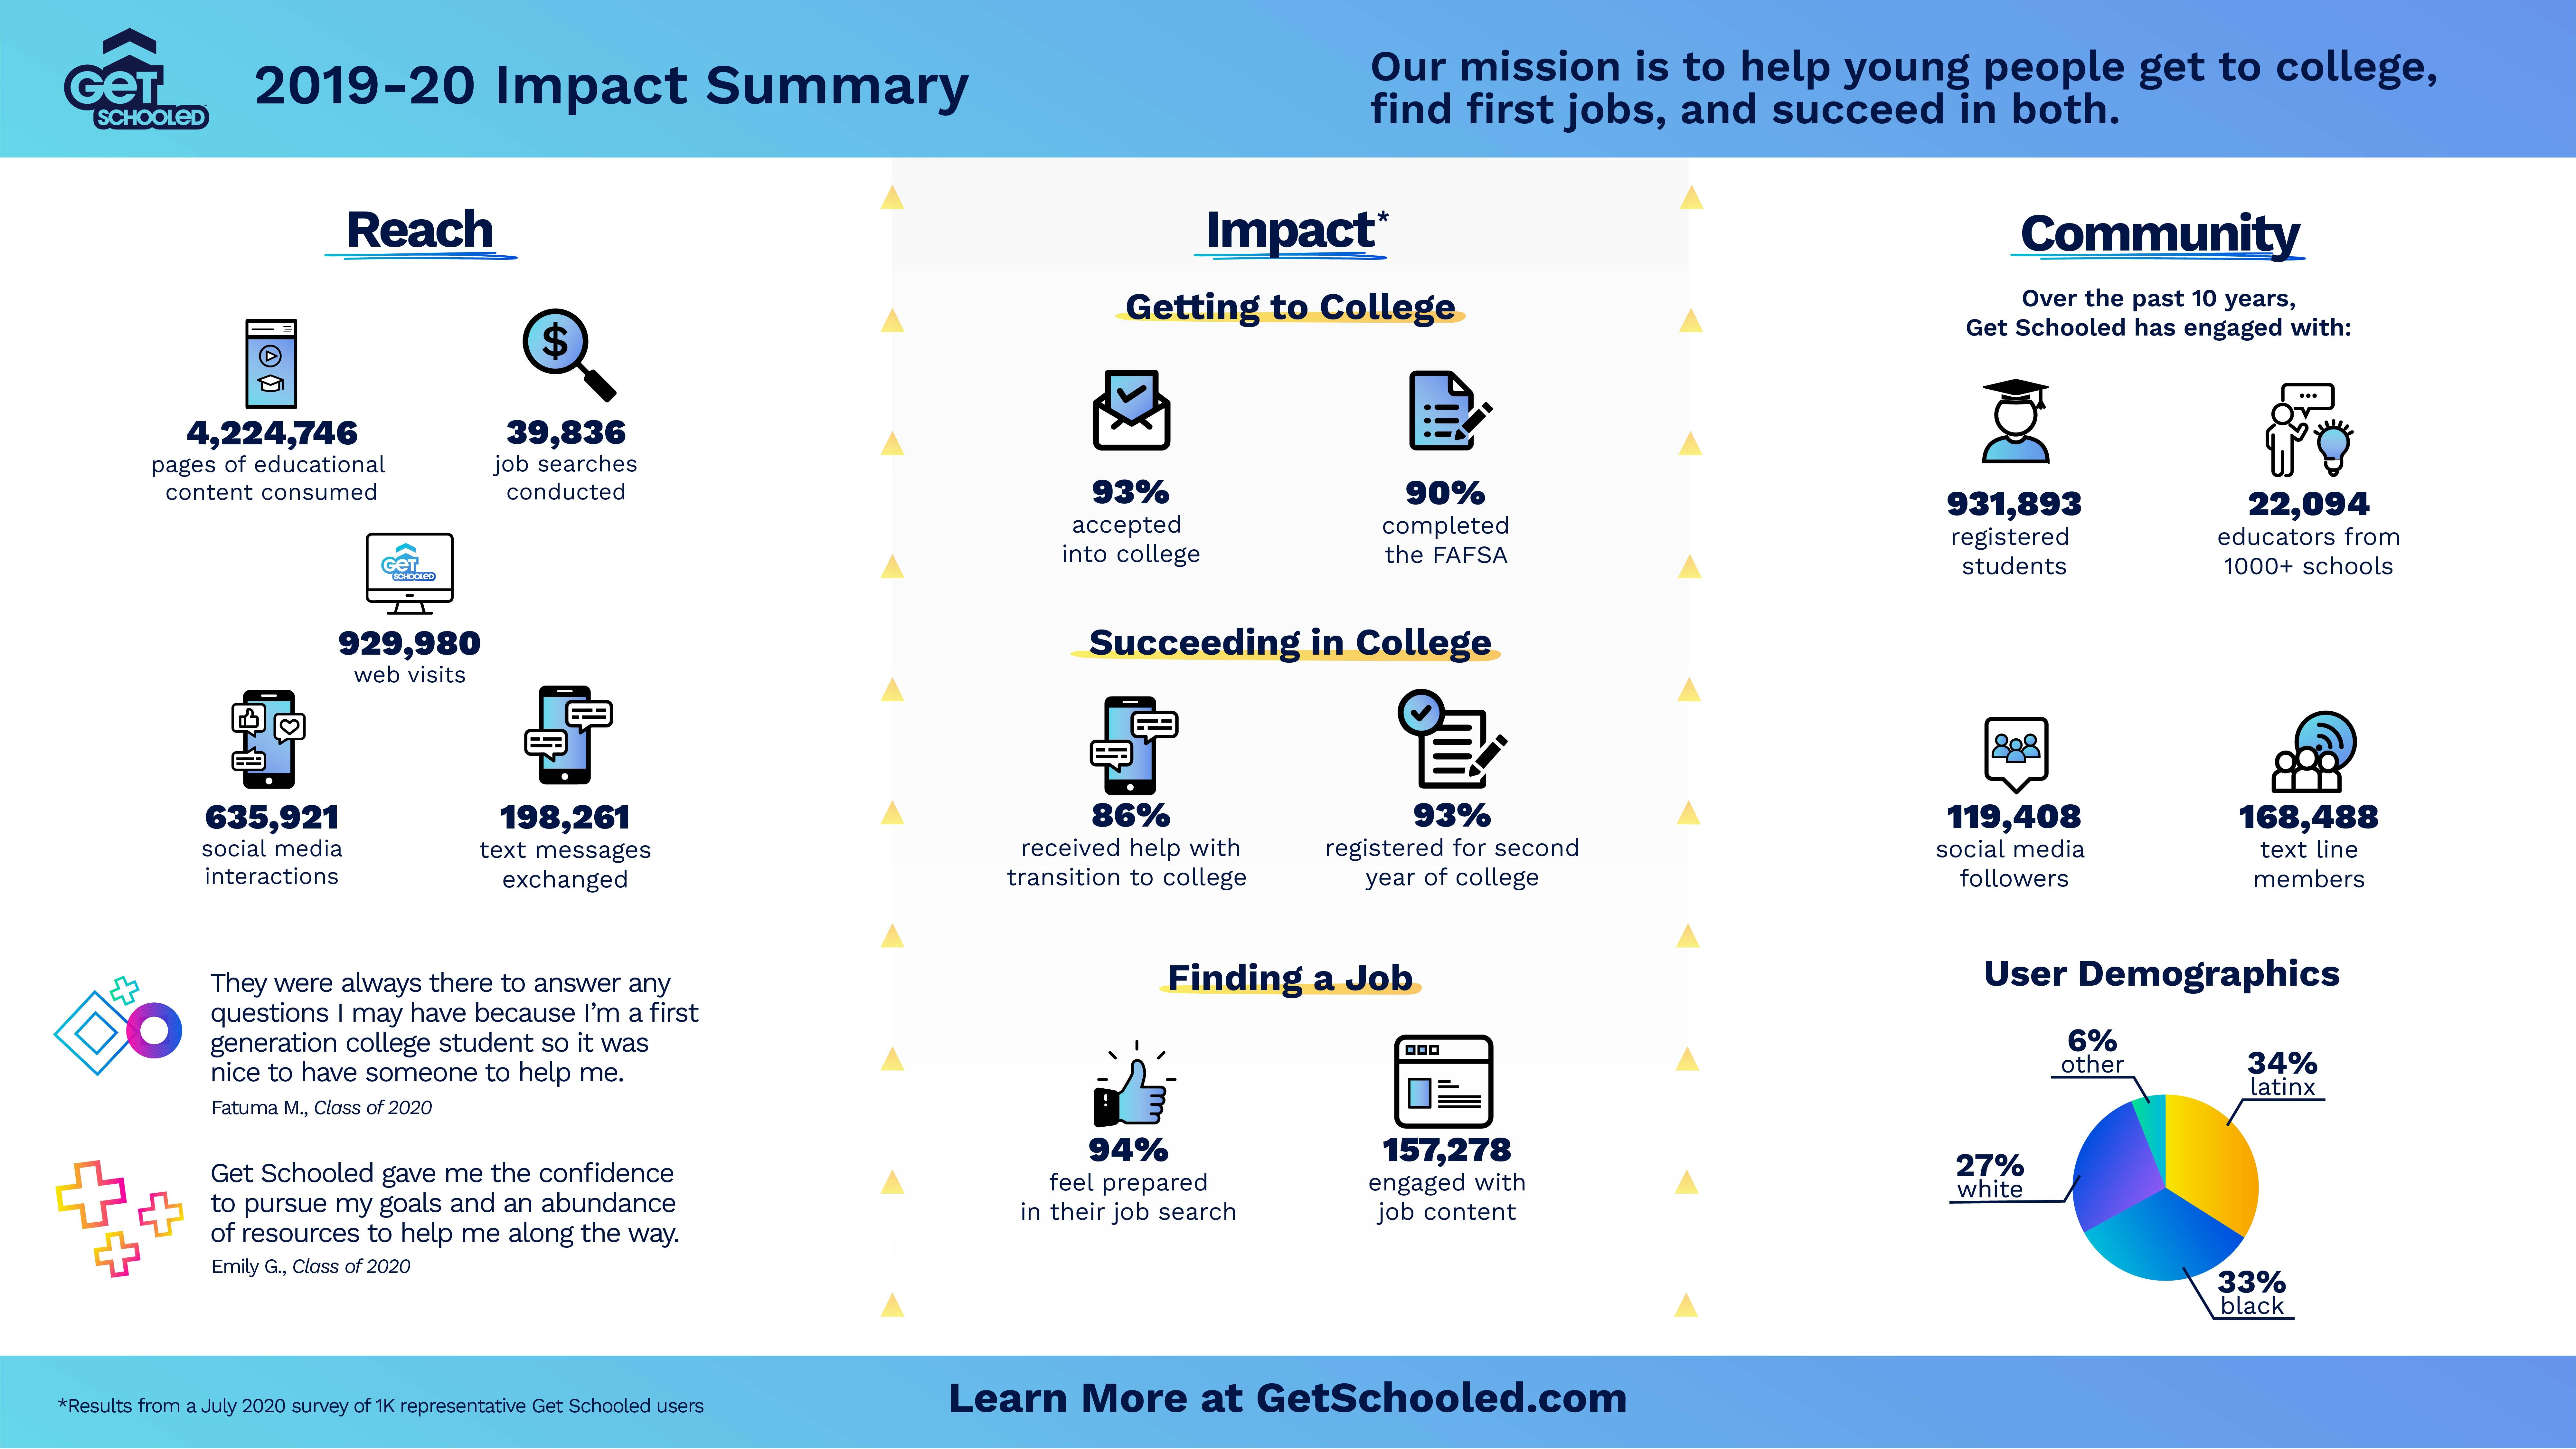 Image of the Get Schooled 2019-20 Impact Summary